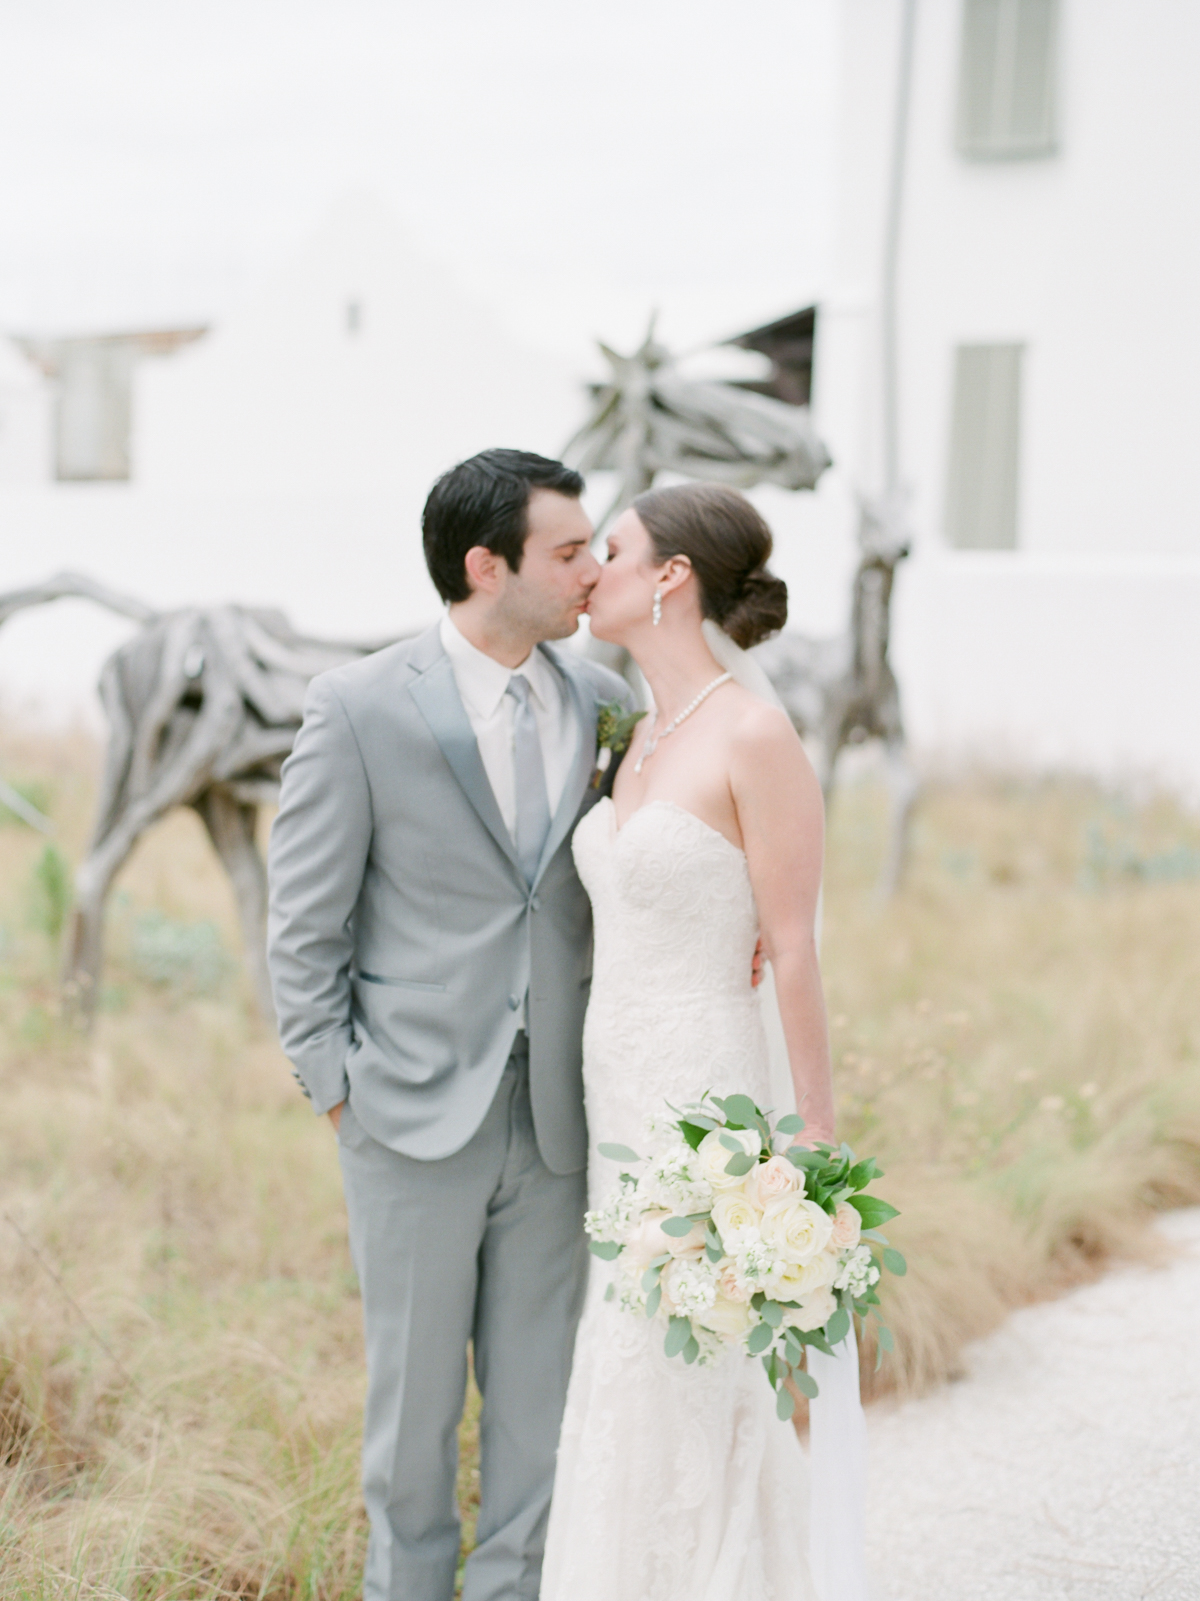 alysbeach-wedding-photographer-kayliebpoplinphotography